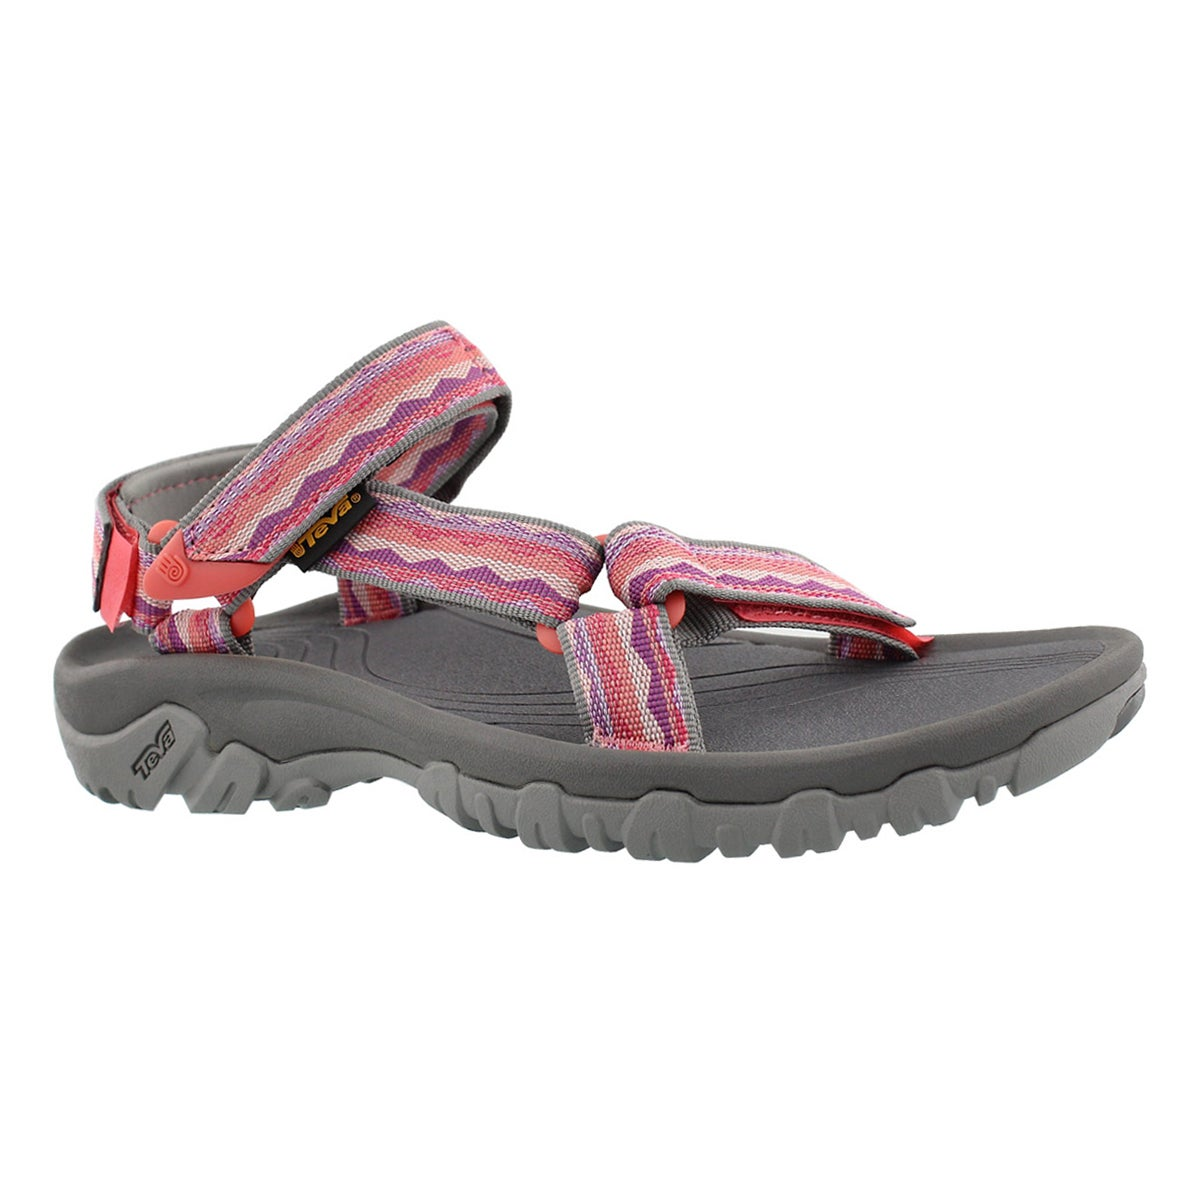 Lds HurricaneXLT lago coral sport sandal